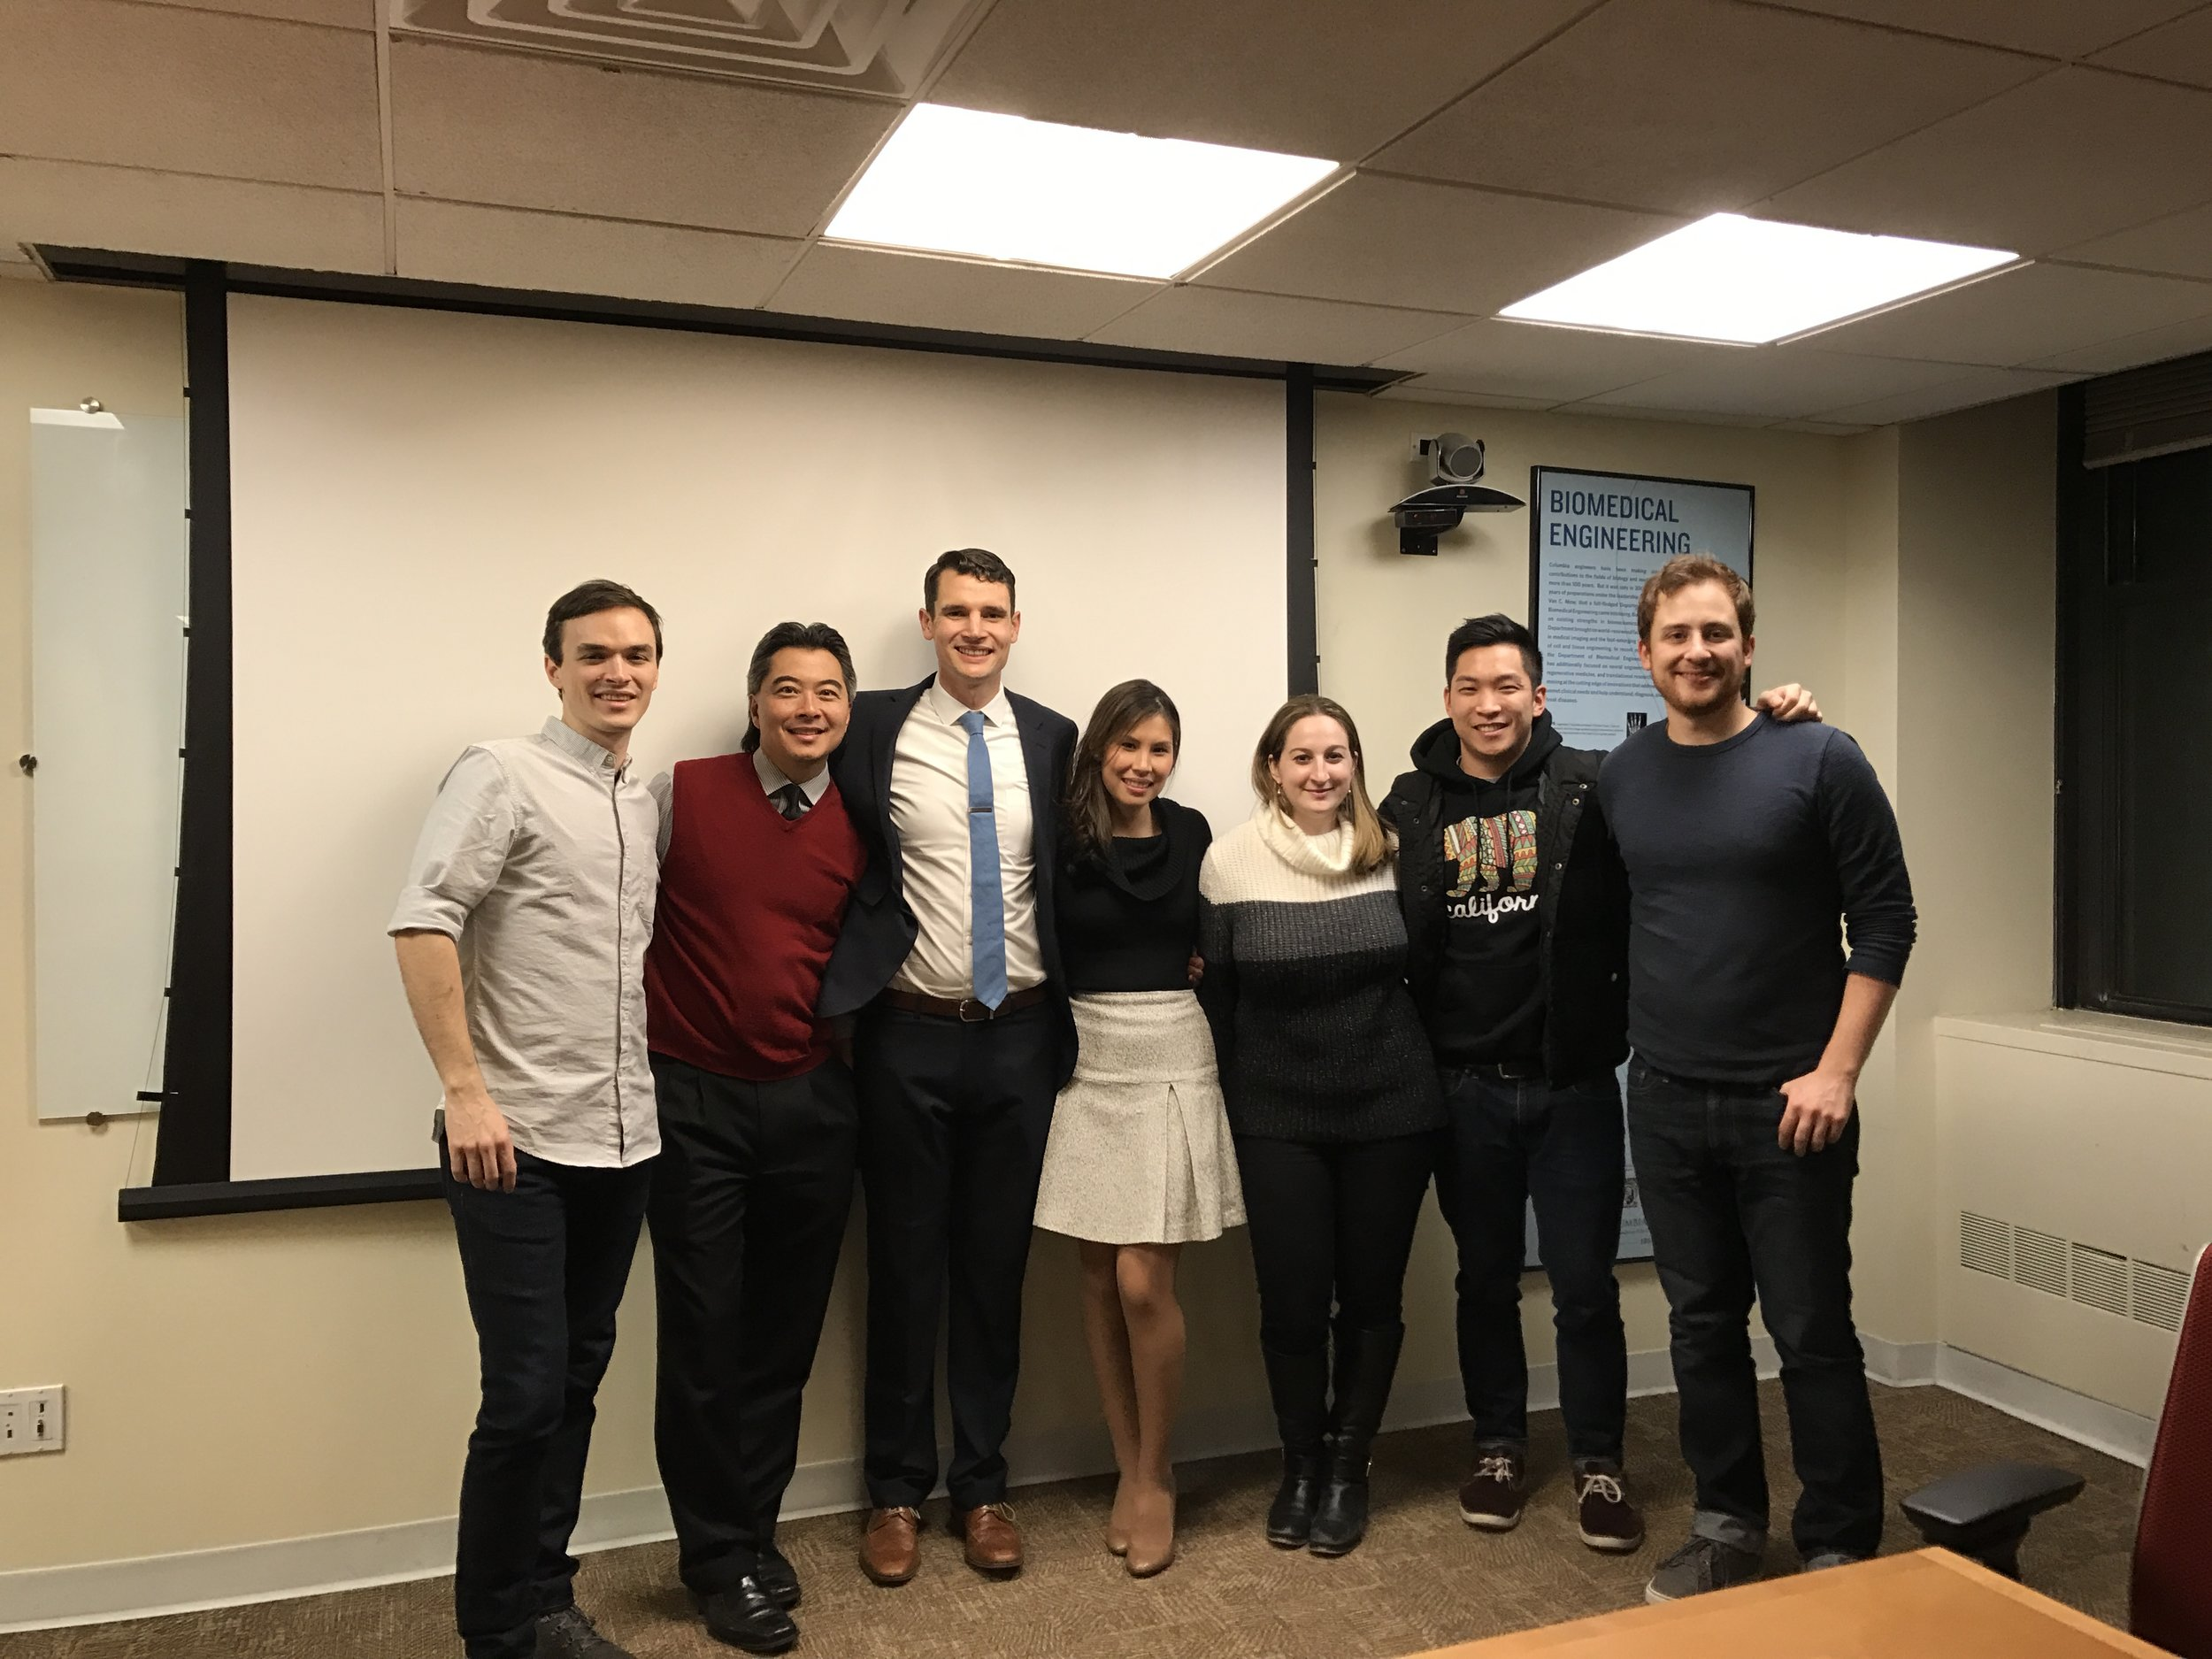 CEL lab members (left to right): Eben Estell, Clark Hung, Brendan Roach, Andrea Tan, Amy Silverstein, Charlie Cai, Rob Stefani